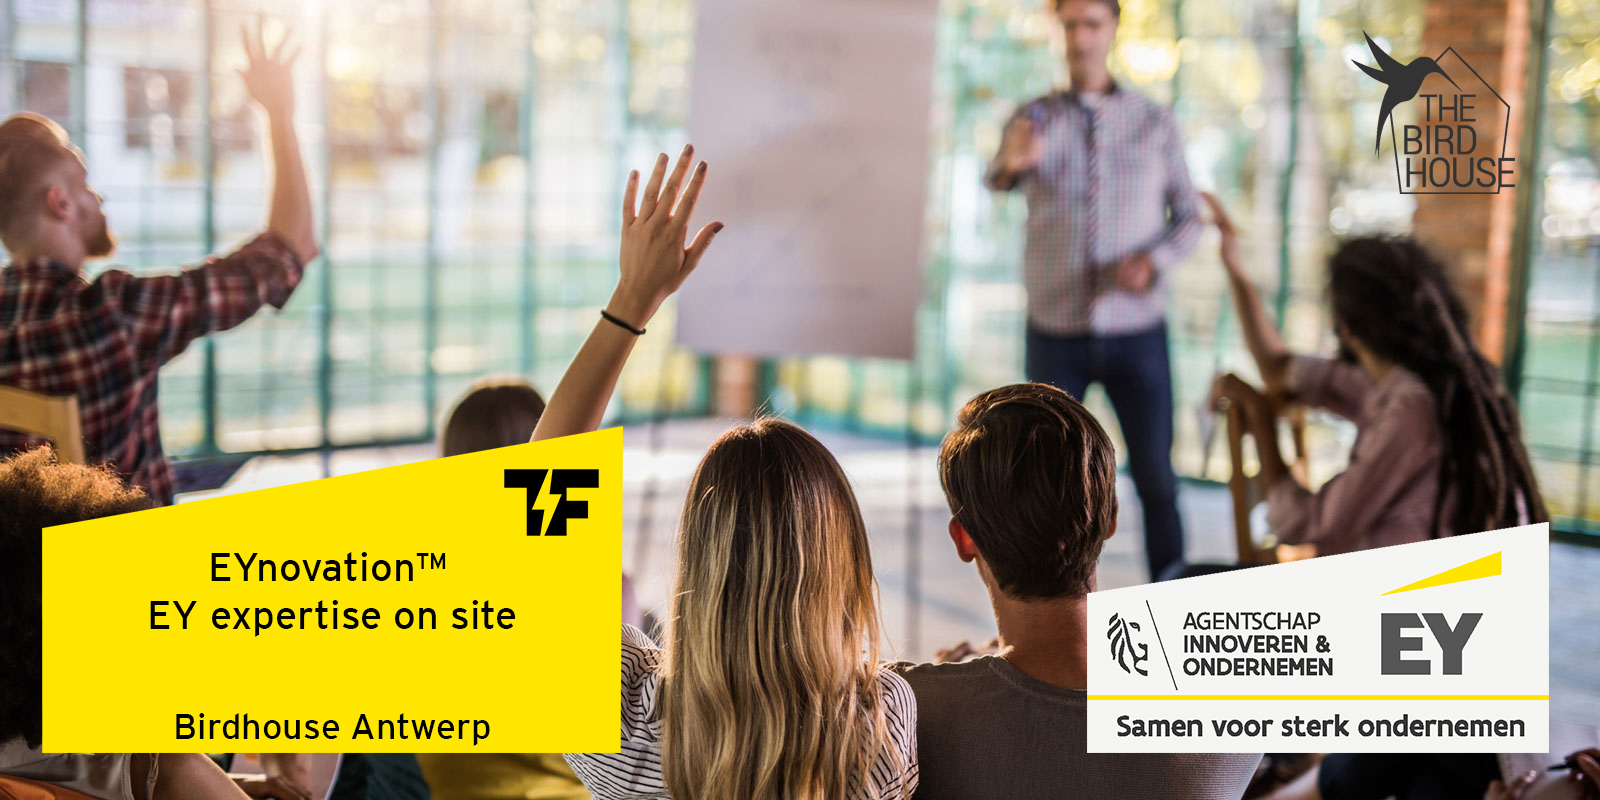 EY Expert Sessions - The Birdhouse Antwerp